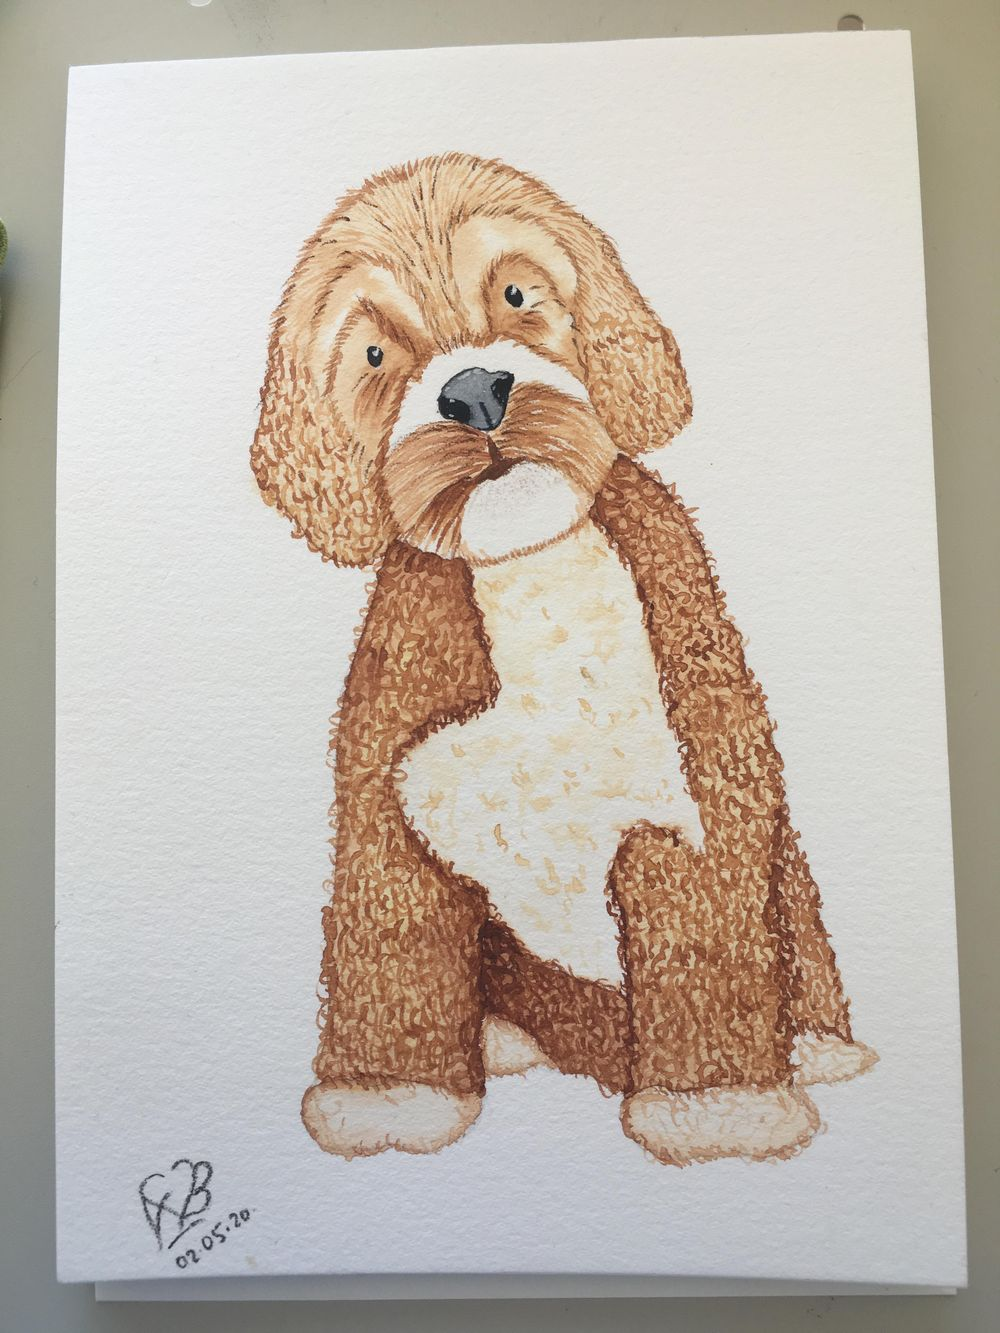 Little bit too brown puppy - image 1 - student project